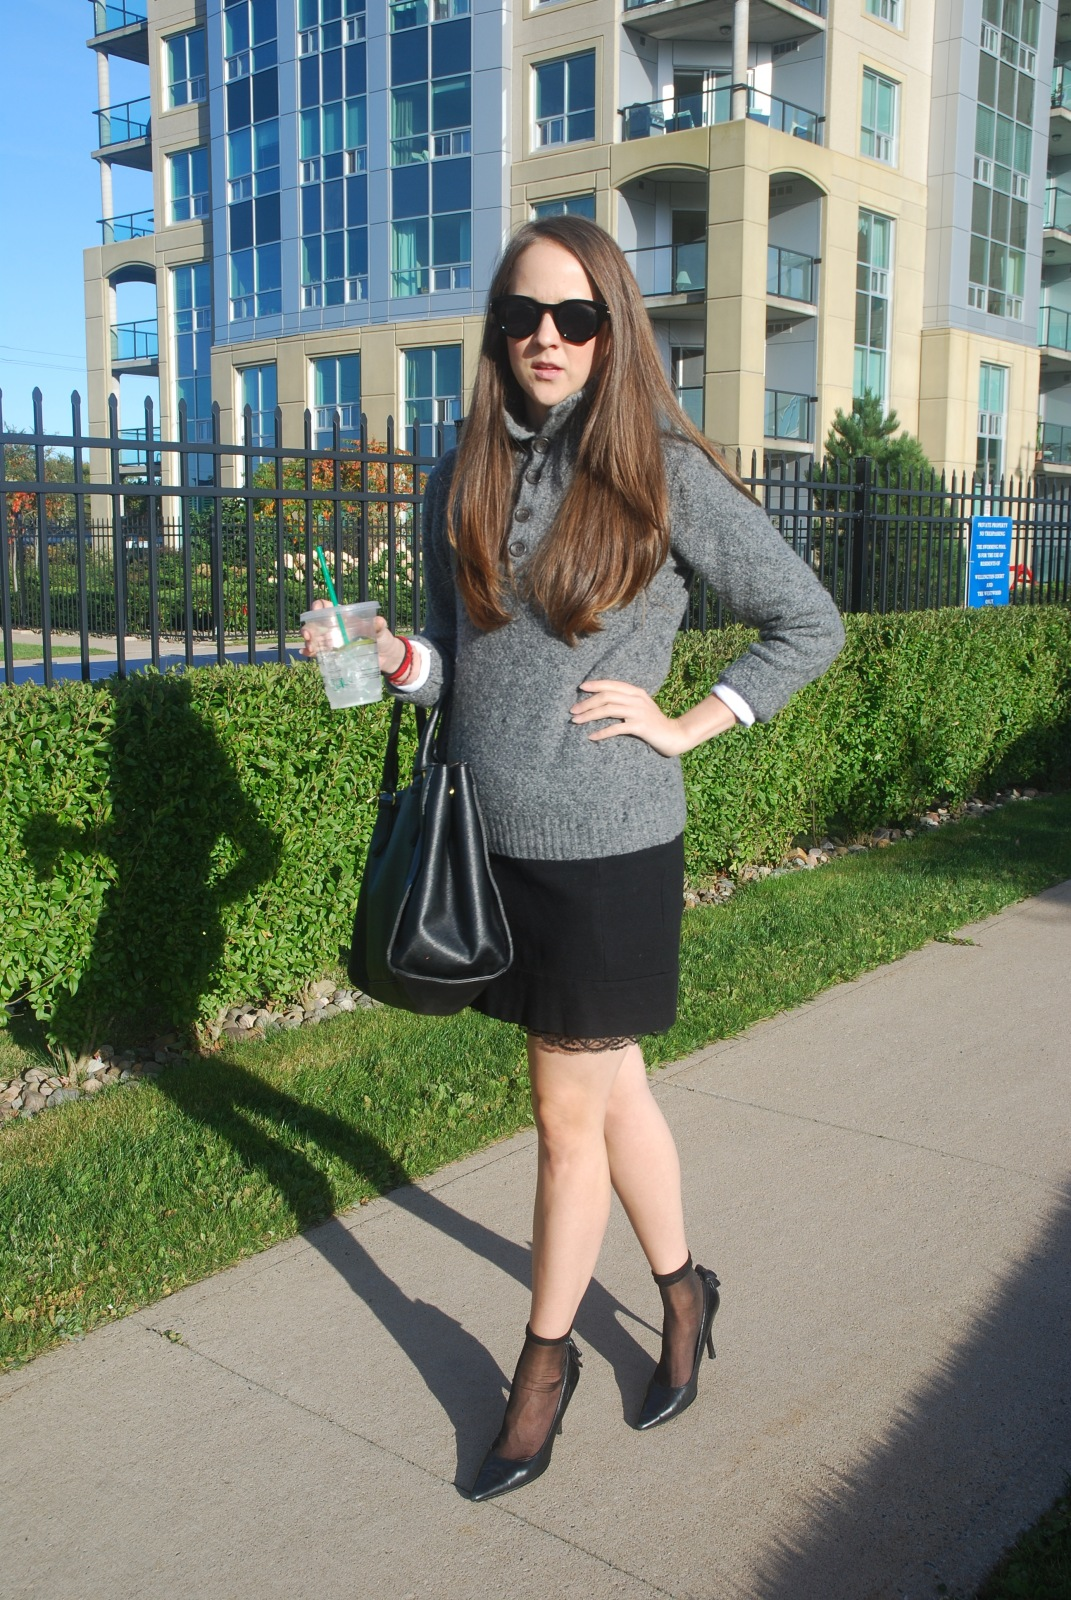 Mens sweaters, knit sweaters, mini skirts, Heels, Fall Fashion, Oufit Ideas, Canadian Blogger. Fashion Blogger,  H&M, Tommy Hilfiger, Polette Sunglasses, Aldo Shoes,